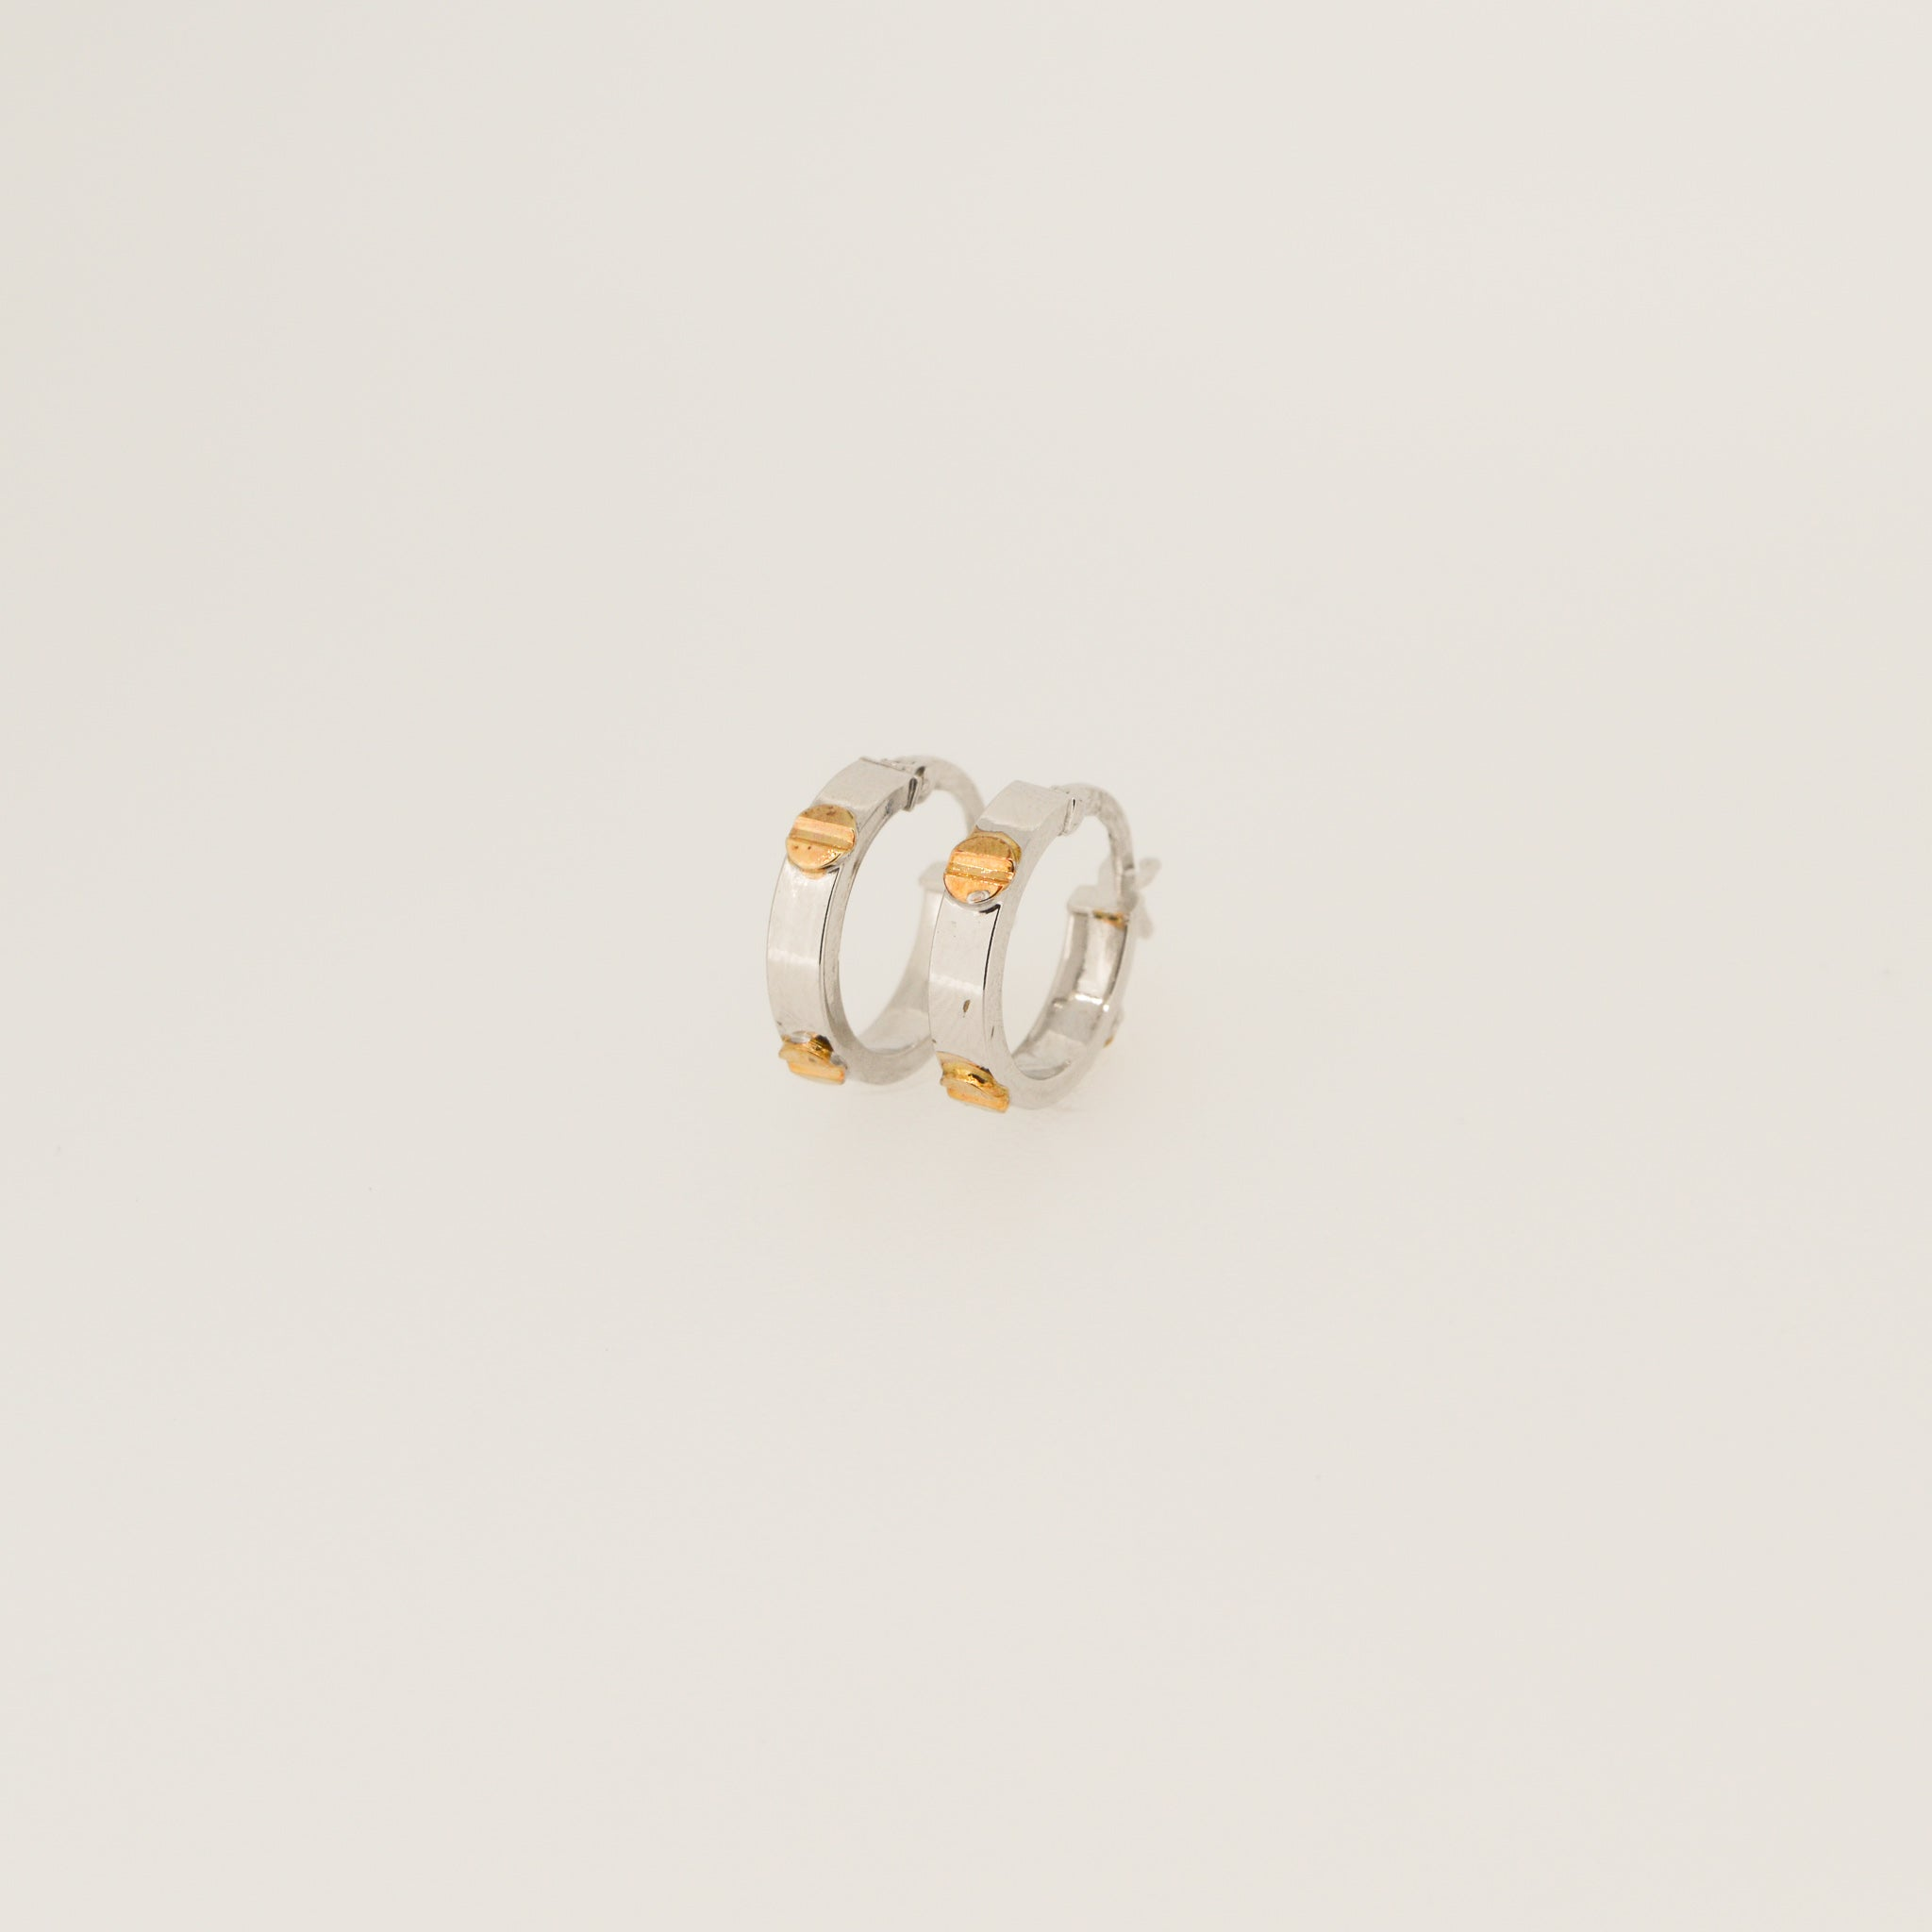 White & Yellow Gold Screw Hoops - 14mm